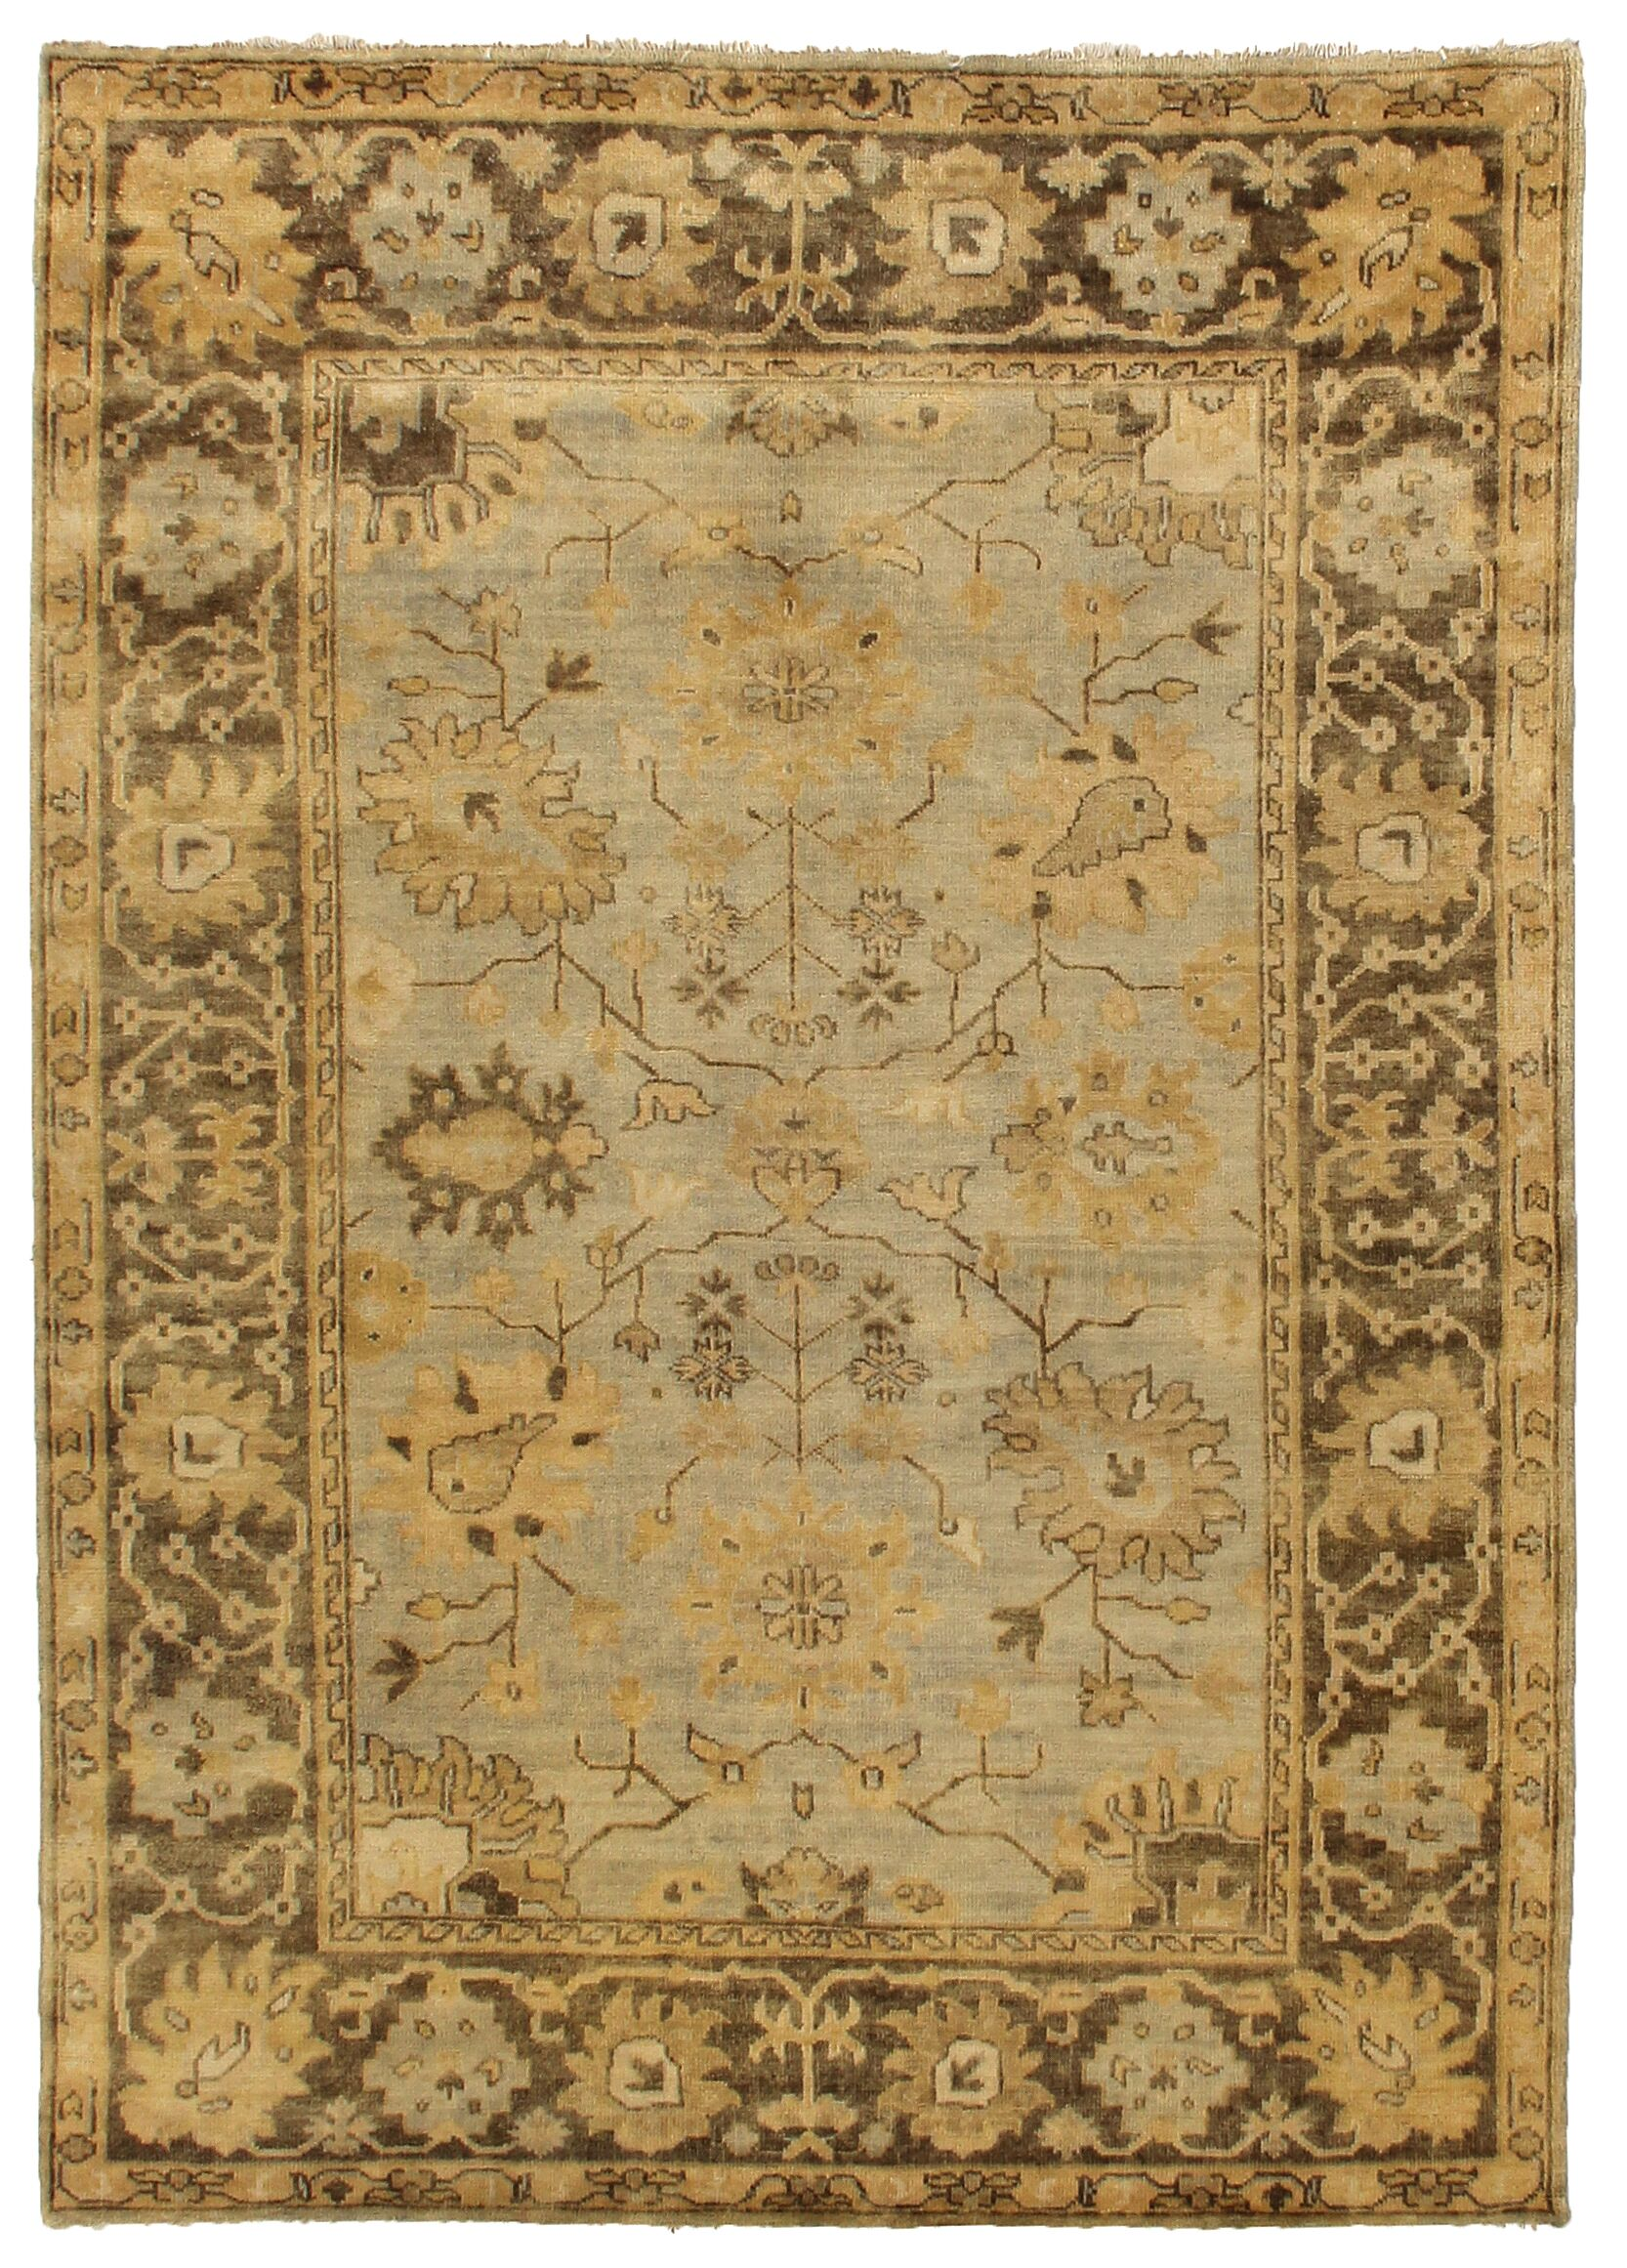 Oushak Hand-Knotted Wool Brown/Gray Area Rug Rug Size: Rectangle 10' x 14'